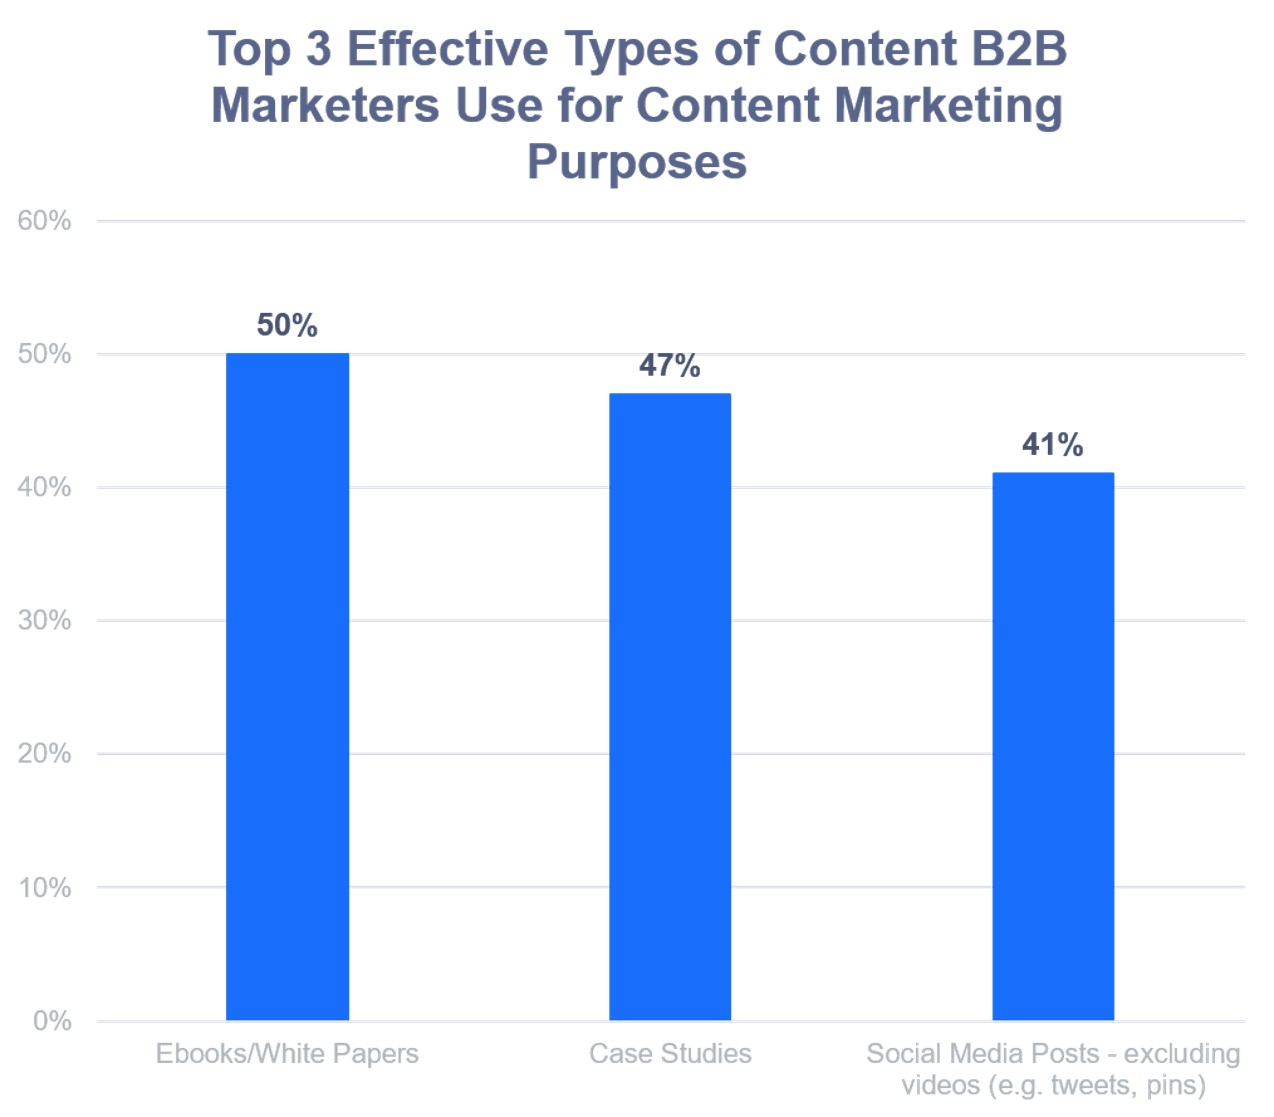 3 effective types of content b2b effective marketers use for content marketing purposes